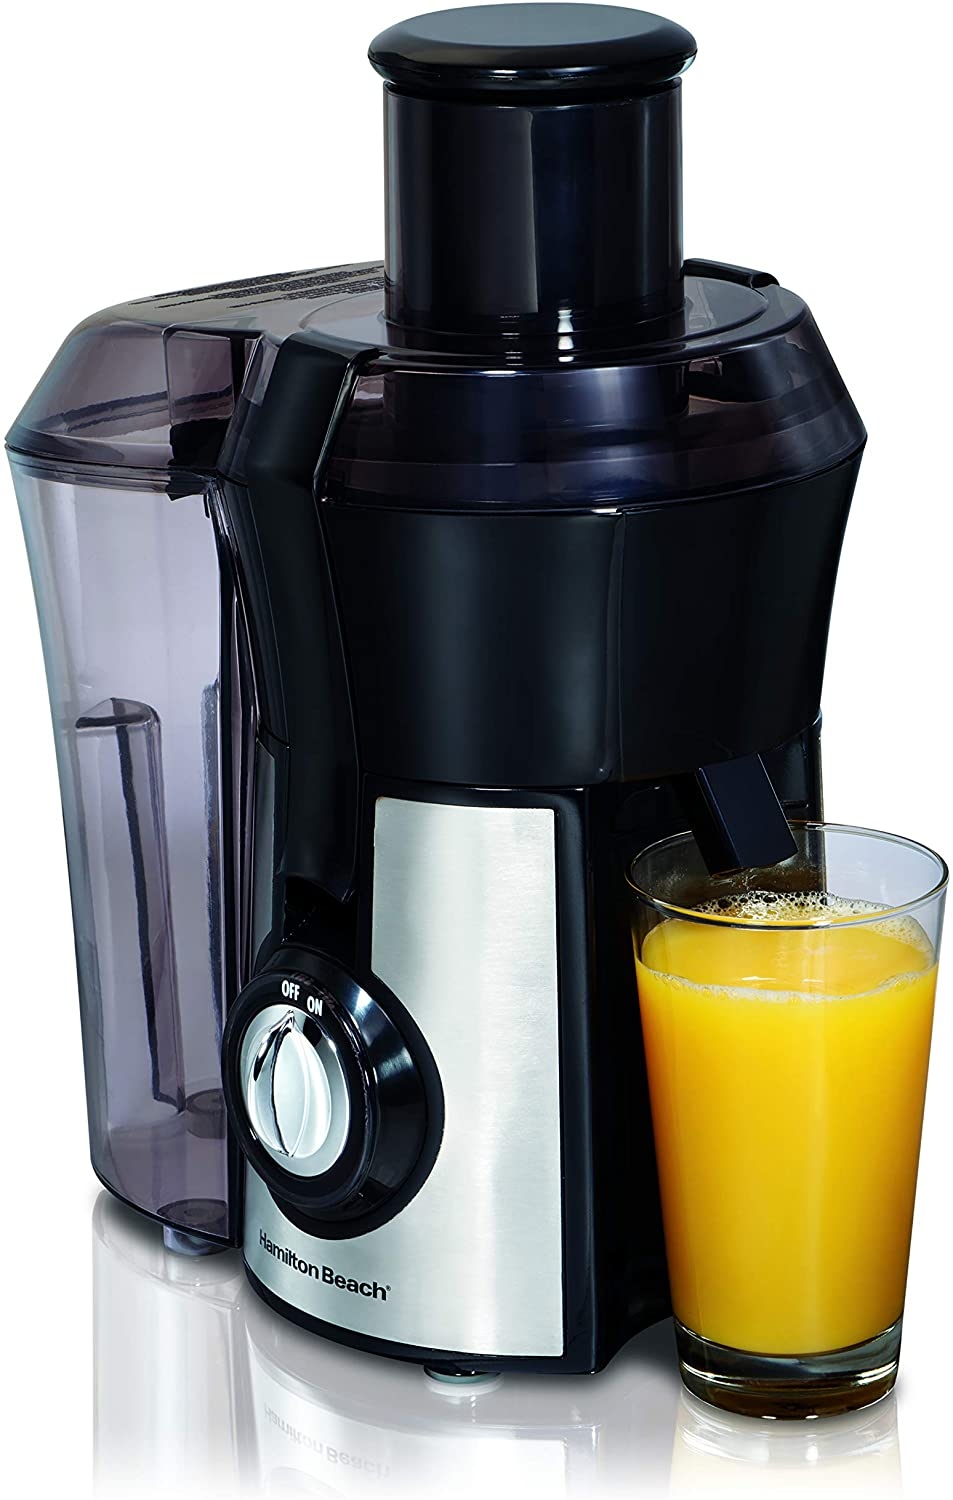 Best Small Juicers 2021 Review - TOP Picks & Buying Guide 6